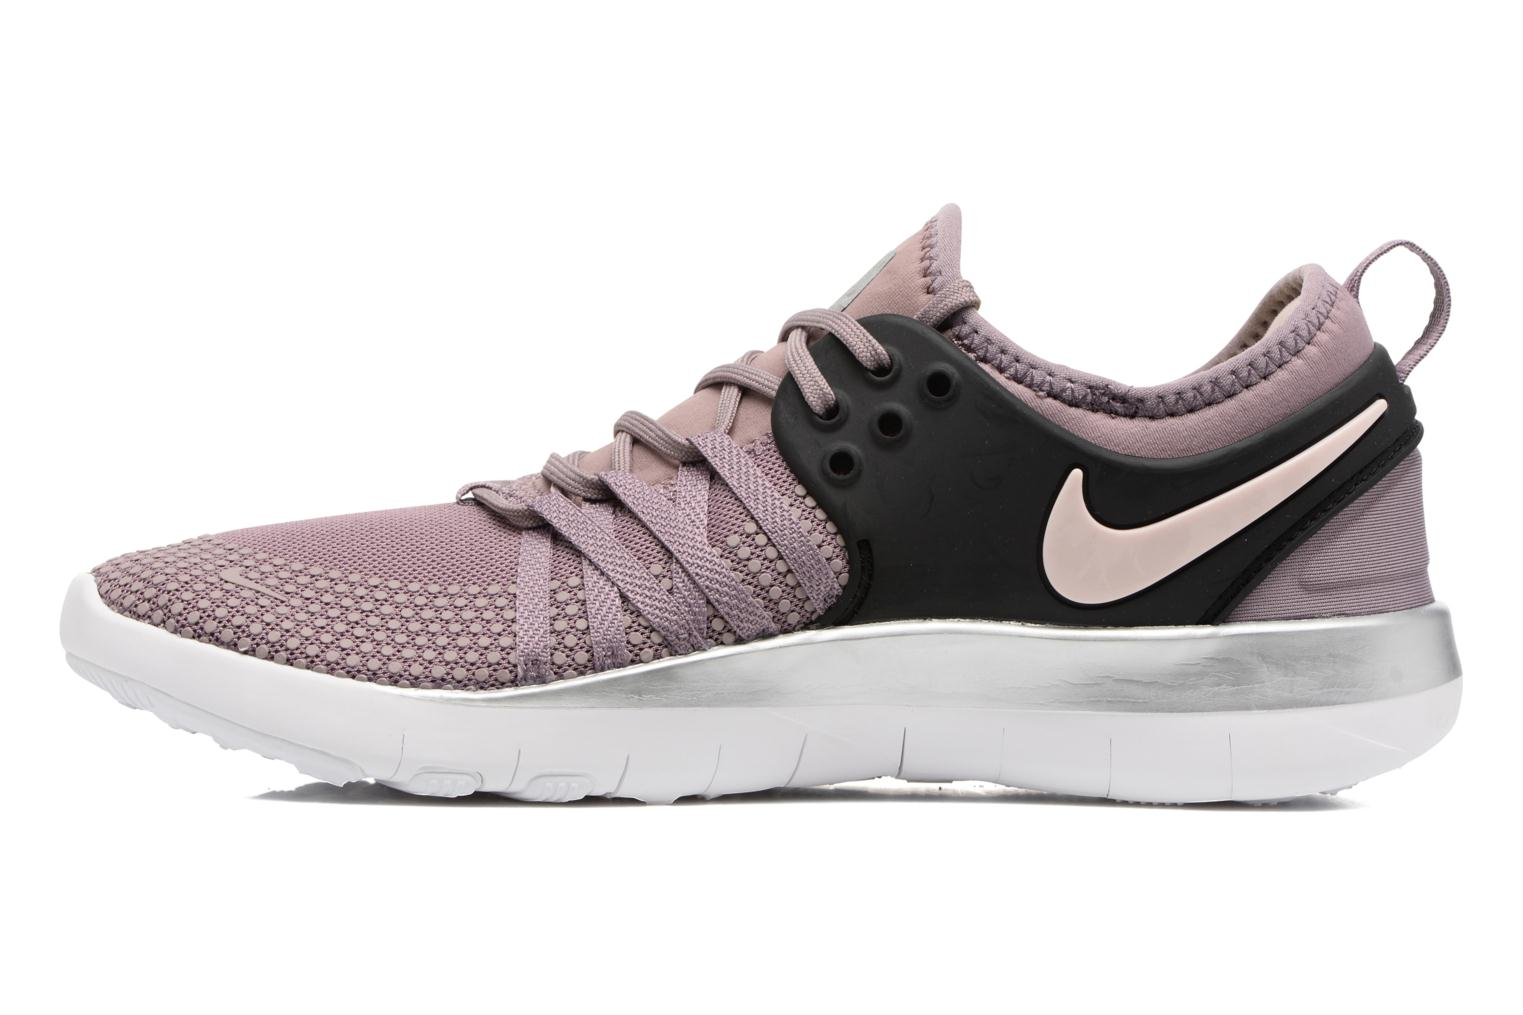 Wmns Nike Free Tr 7 Bionic Taupe Grey/Black-Sunset Tint-Chrome